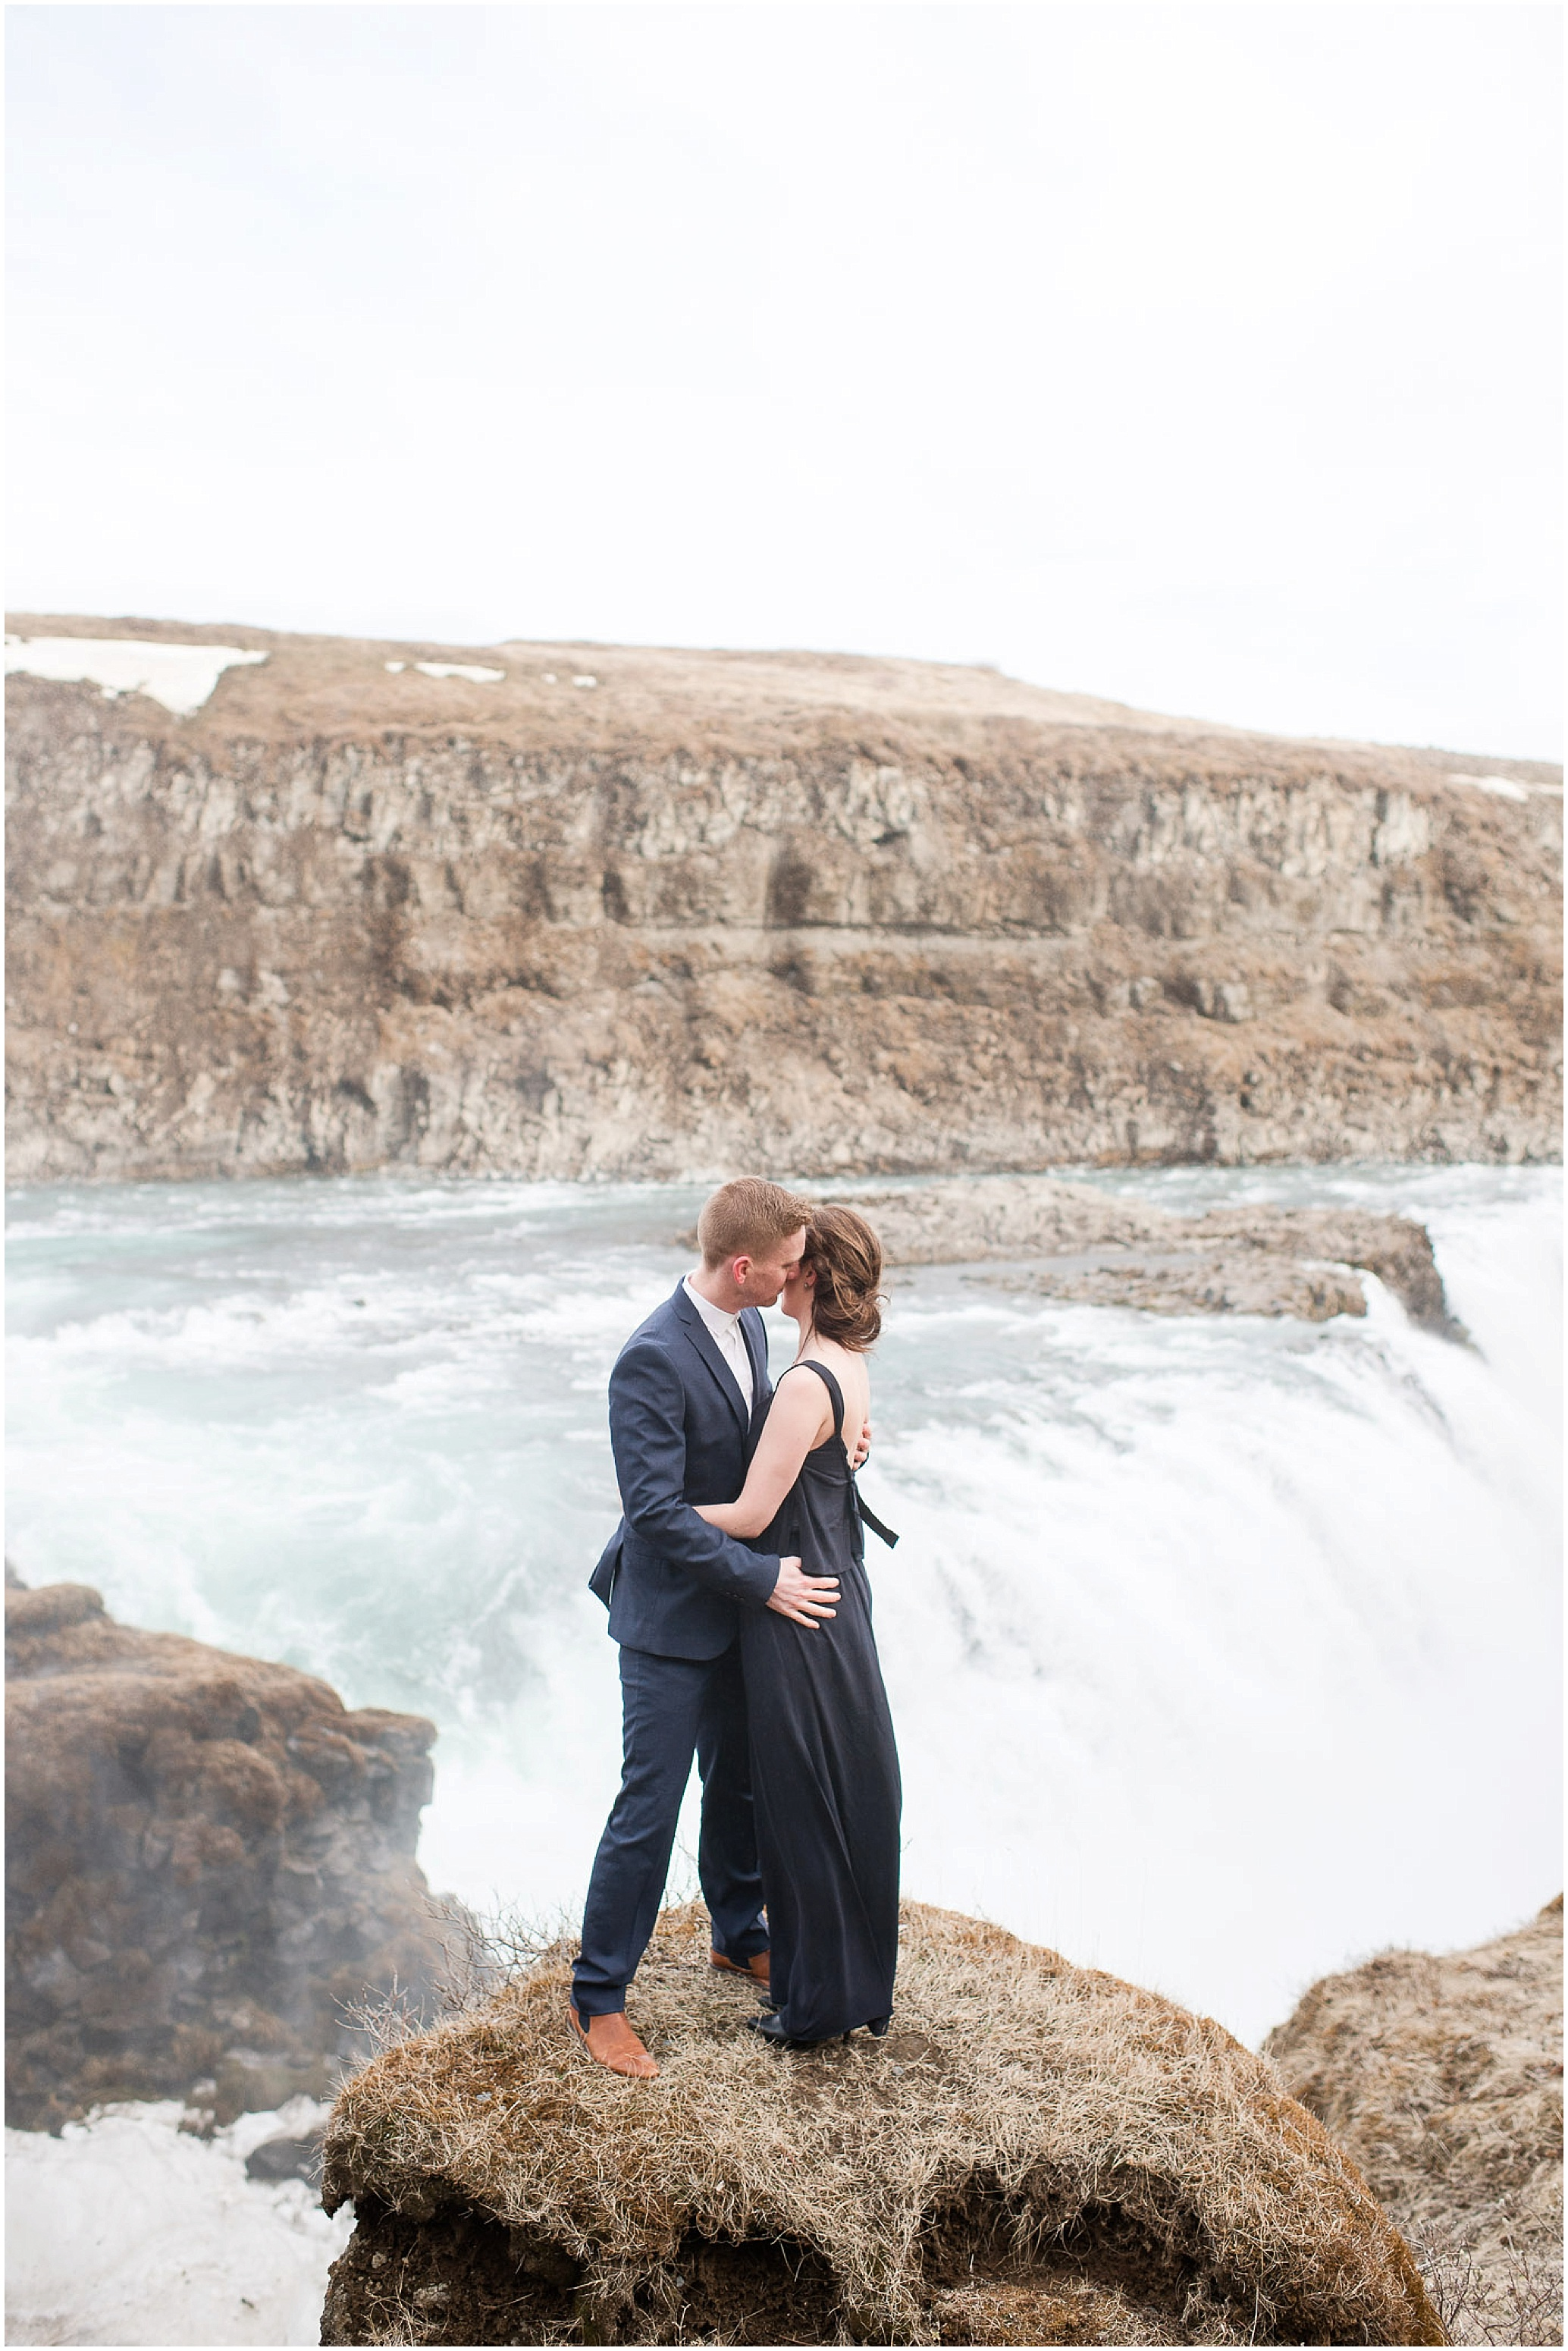 Hannah Leigh Photography Iceland Elopement Photographer_0122.jpg